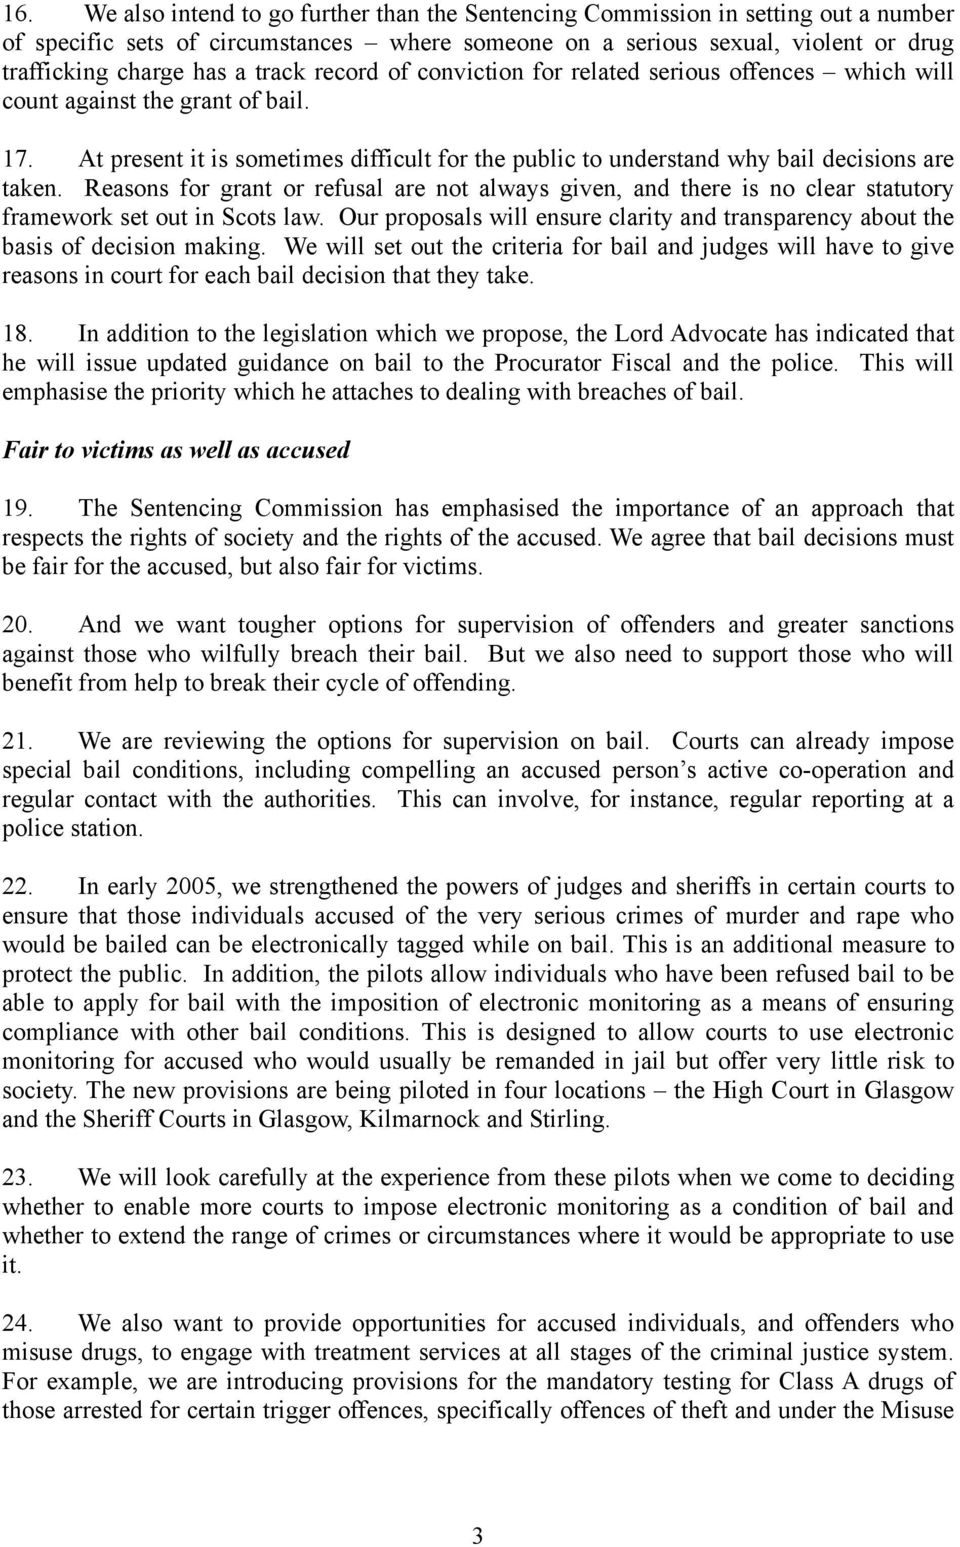 Reasons for grant or refusal are not always given, and there is no clear statutory framework set out in Scots law.